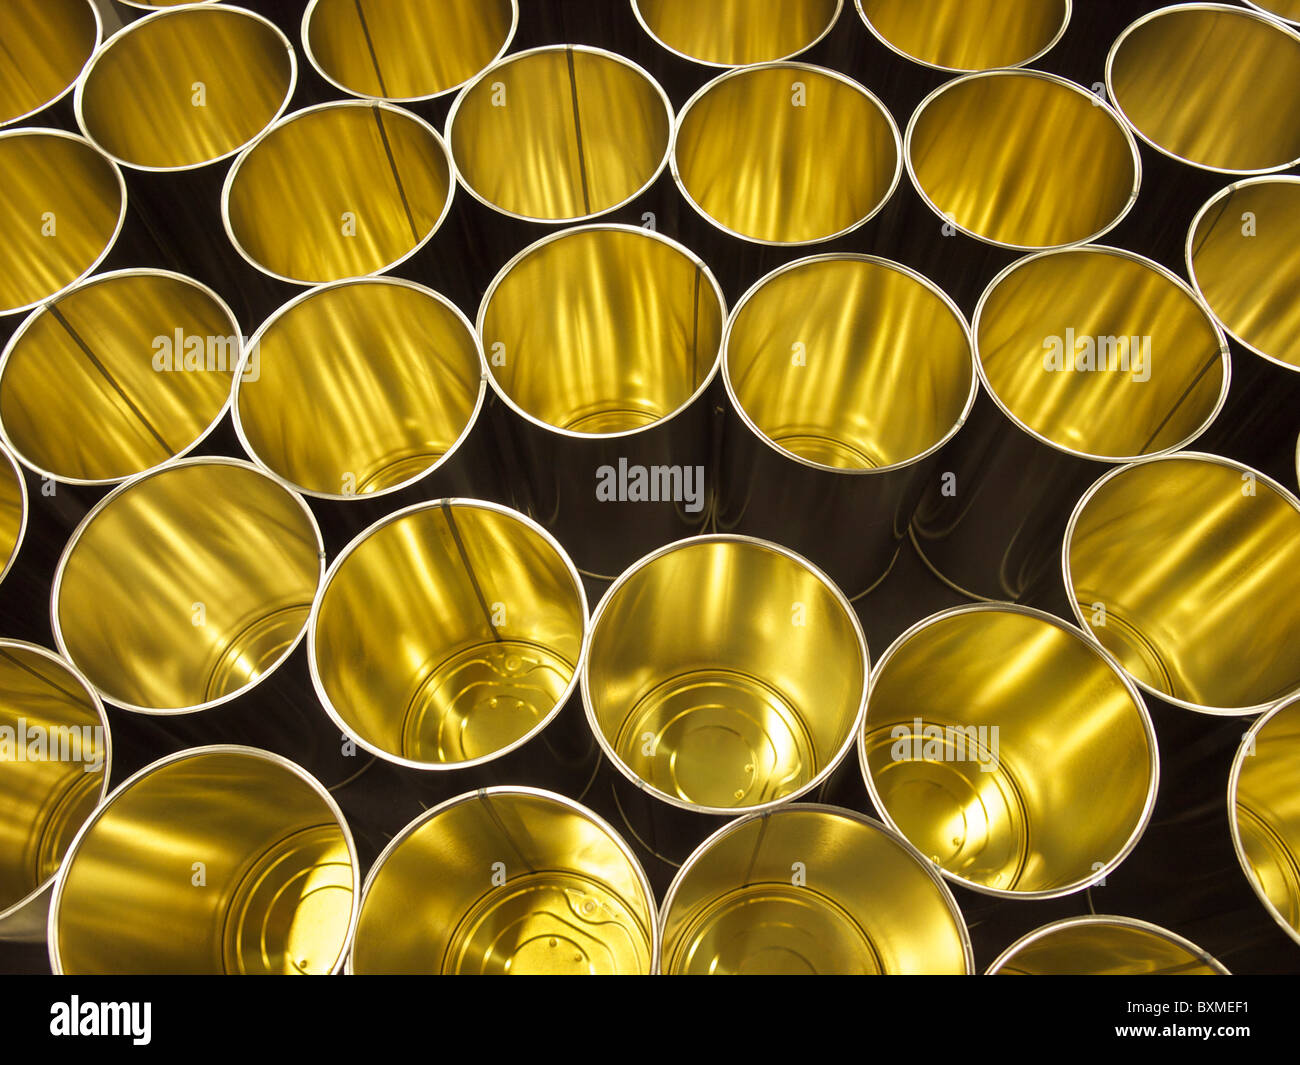 Empty cans on production line in a factory, ready to be filled. - Stock Image